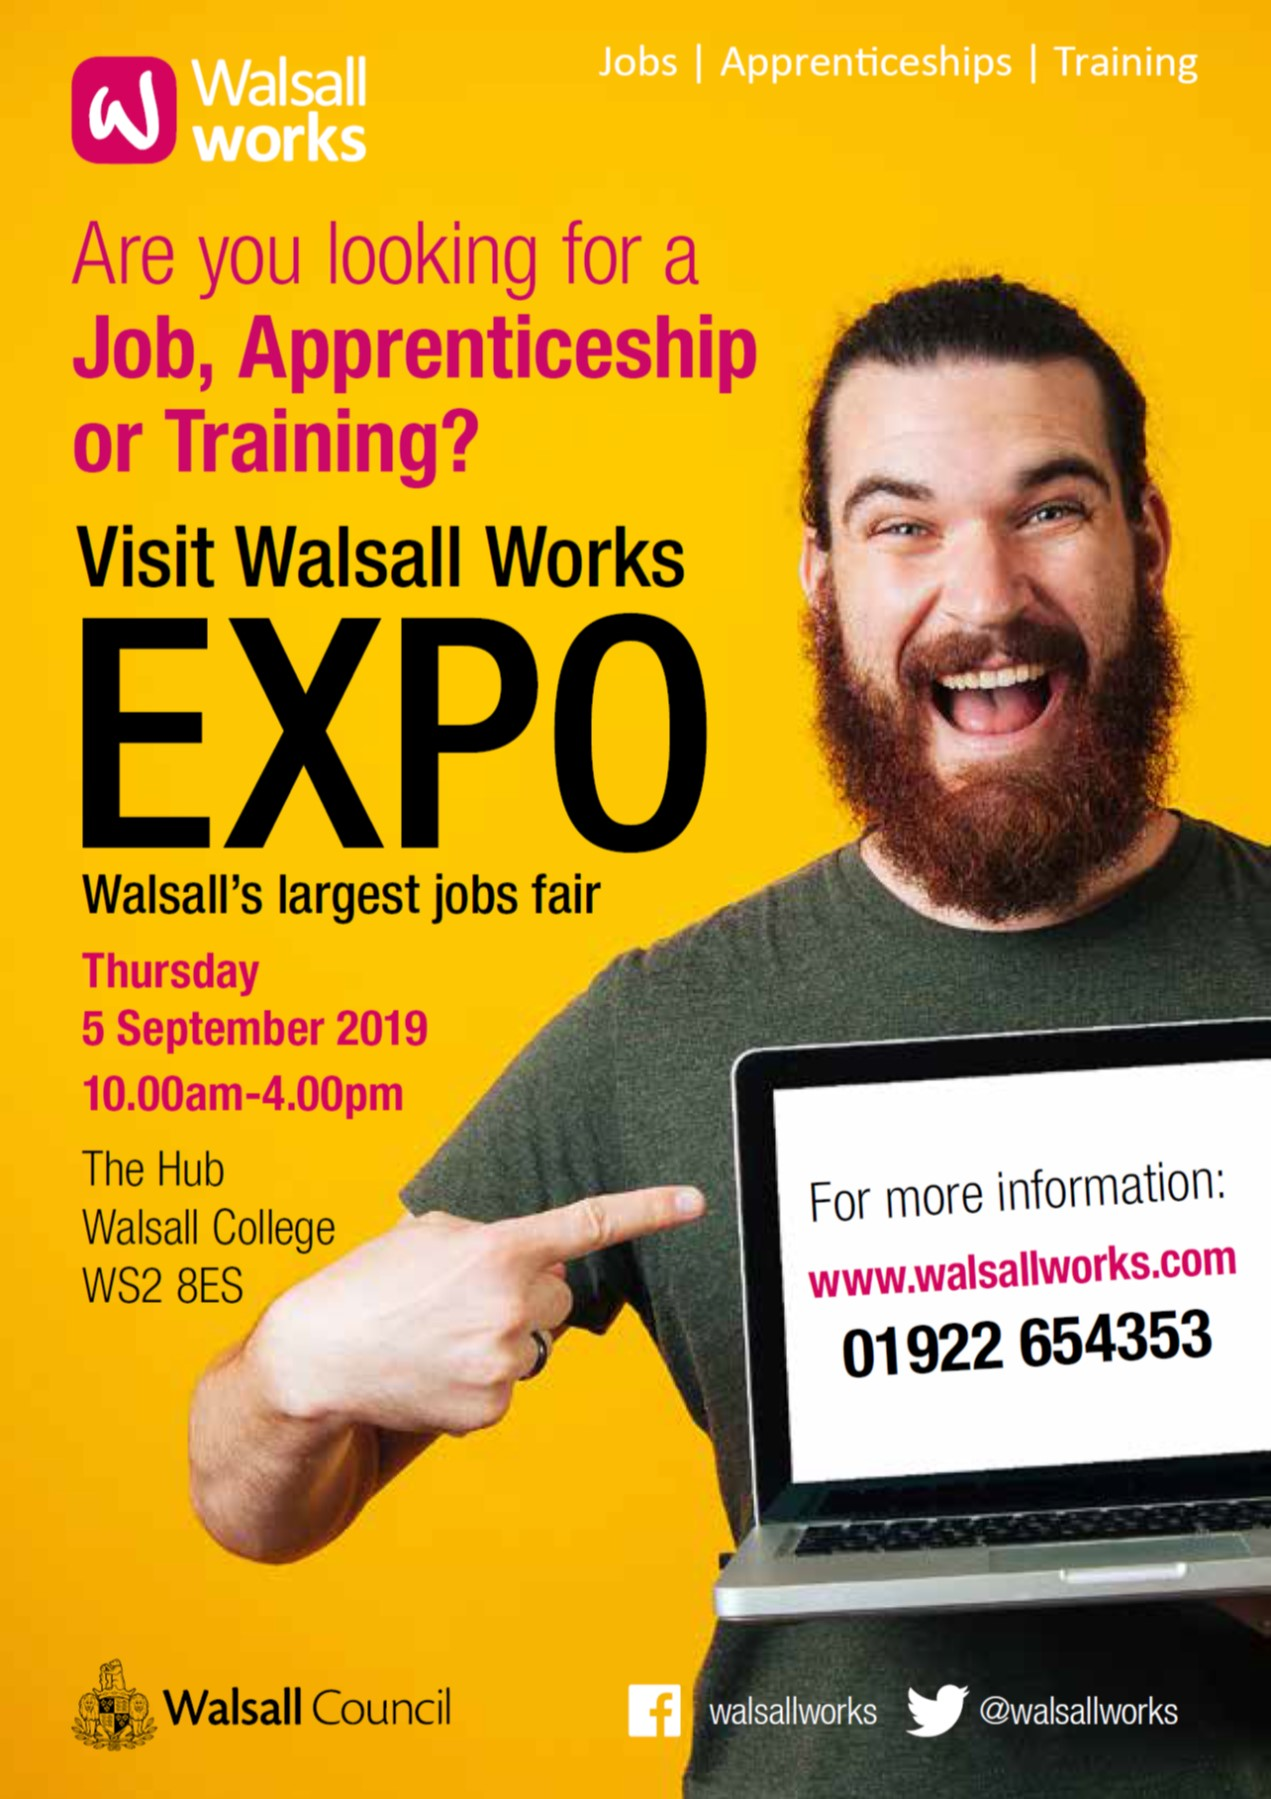 Walsall Works Expo Flyer